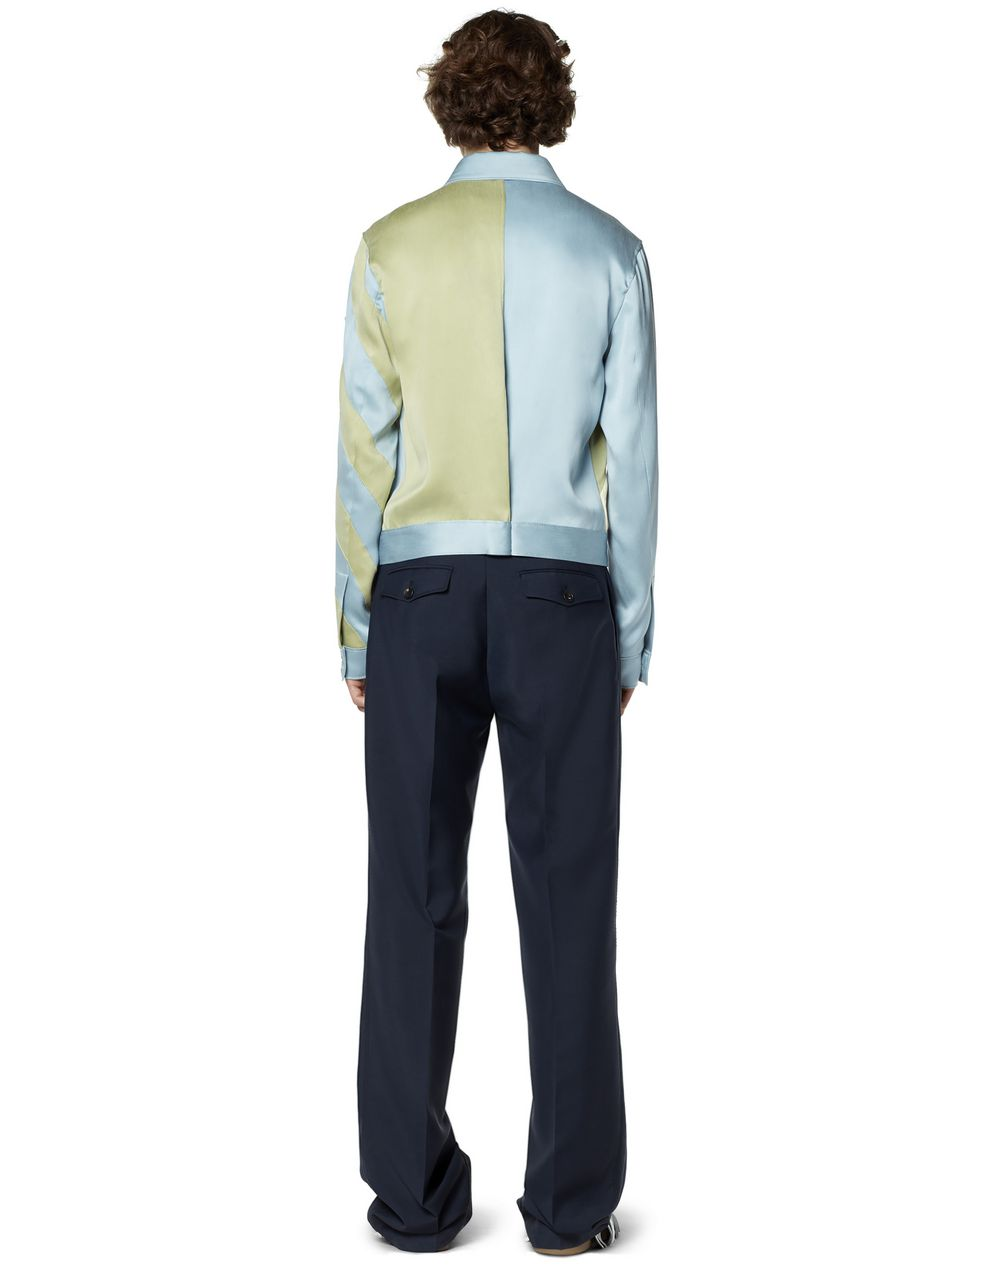 JOCKEY JACKET - Lanvin